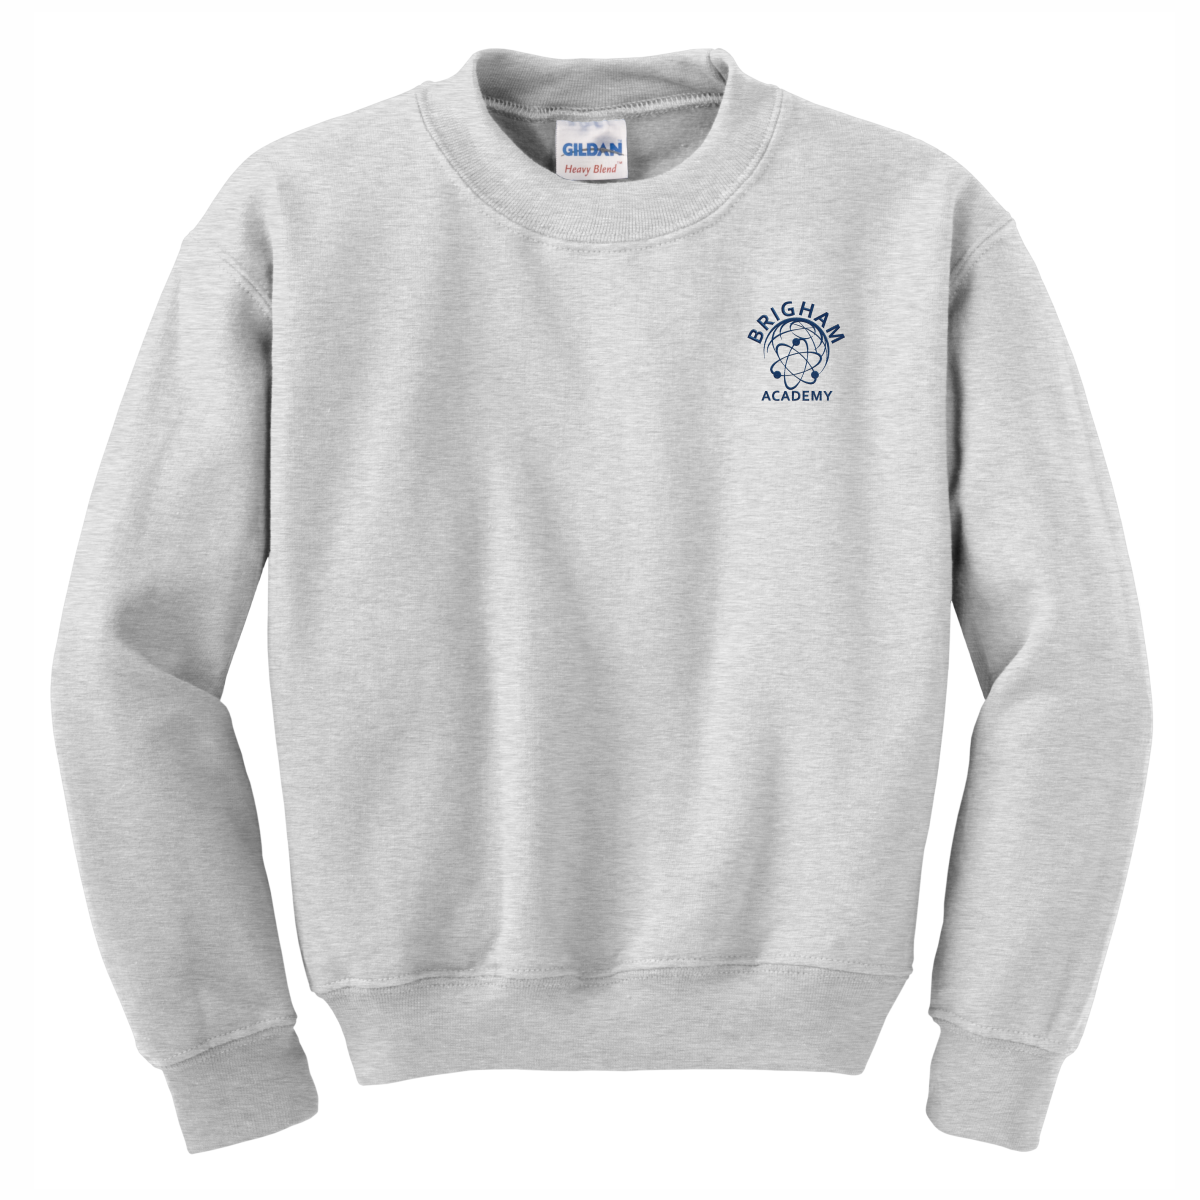 Brigham Academy Youth Heavy Blend Crewneck Sweatshirt - GREY